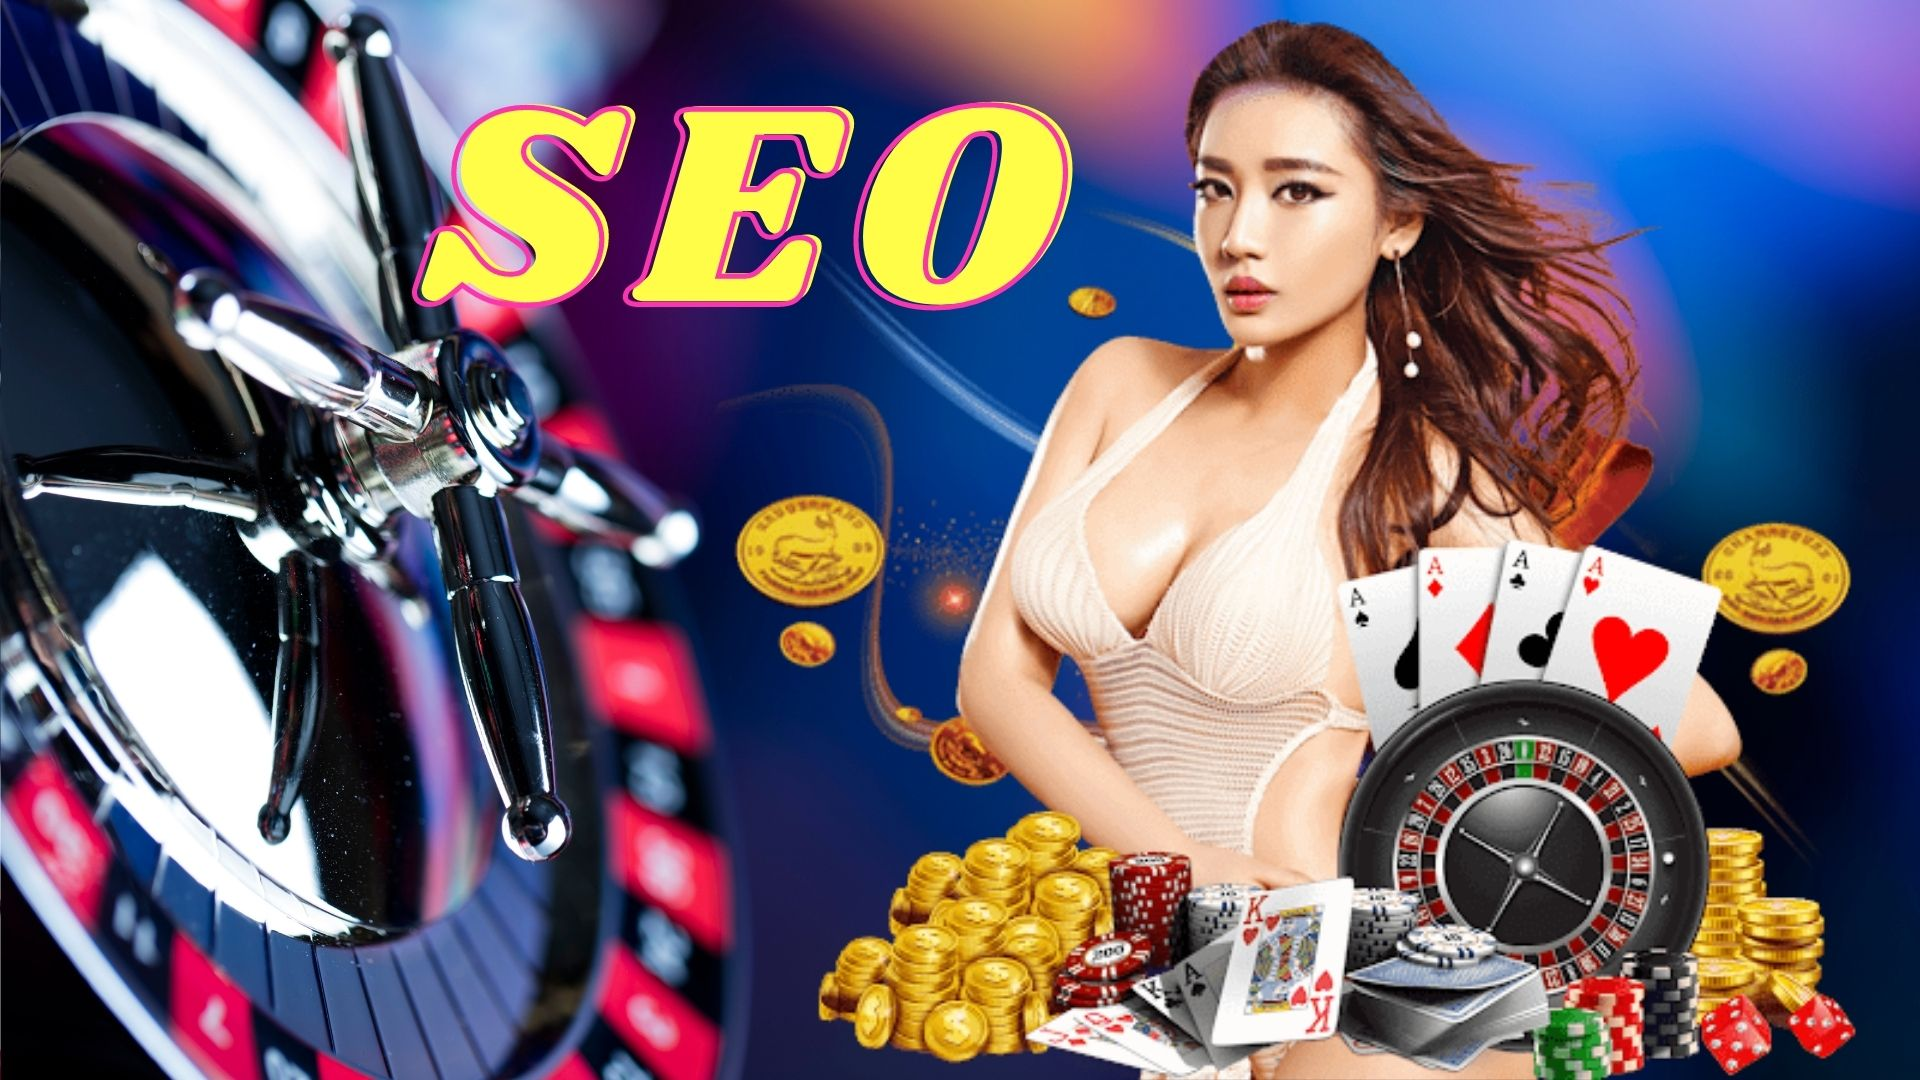 11,111 backlinks Pack Google 1st Page Casino Poker sports Betting Gambling related site